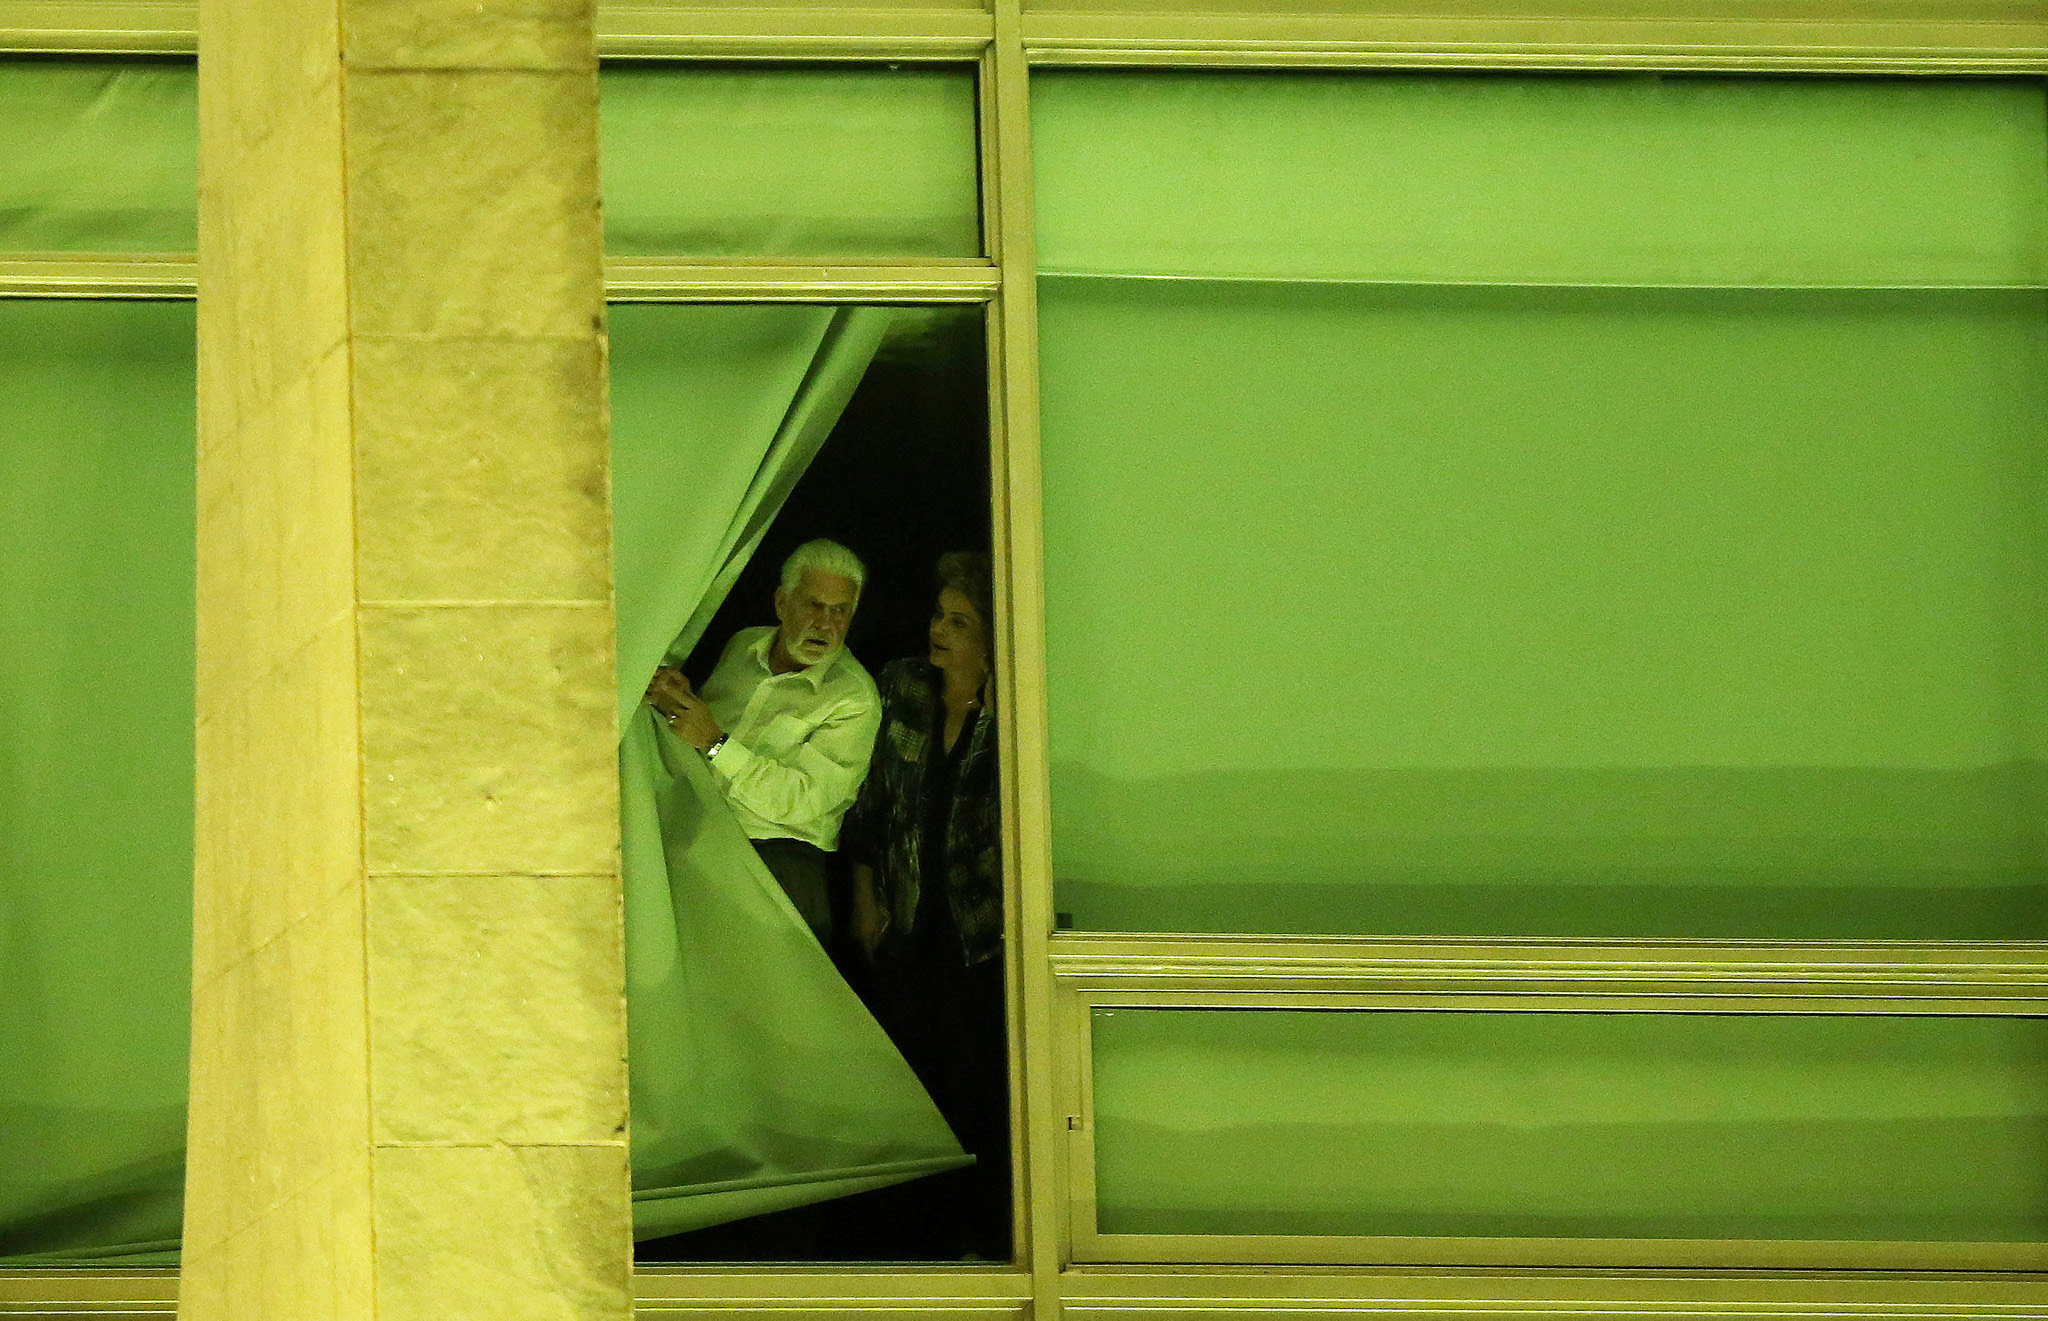 Brazil's President Dilma Rousseff, accompanied by Chief of Staff Jaques Wagner, looks from a window at Planalto Palace in Brasilia, Brazil, May 11, 2016.  REUTERS/Adriano Machado     TPX IMAGES OF THE DAY      - RTX2DWXU